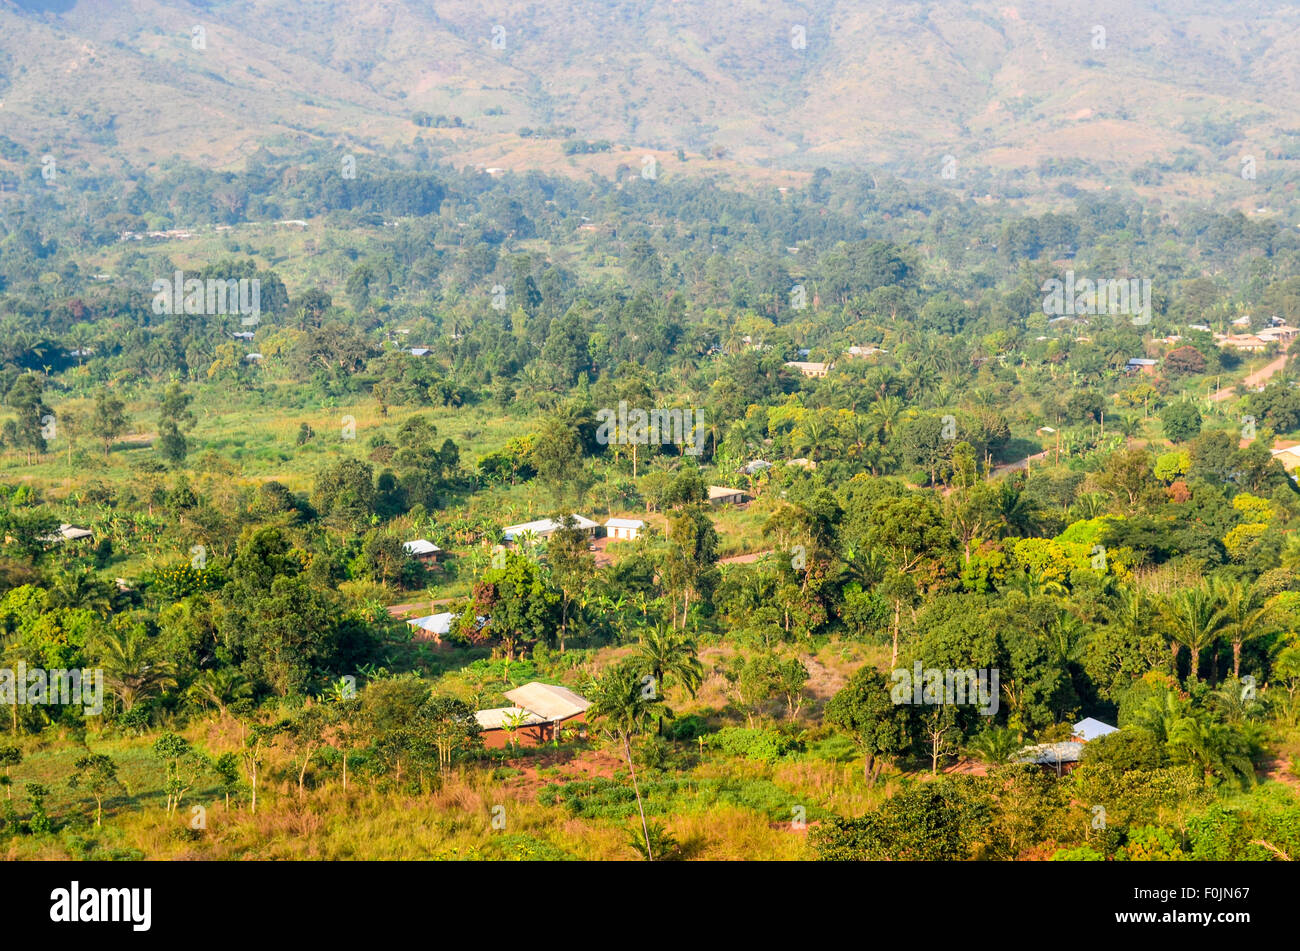 Aerial view of rural Cameroon - Stock Image